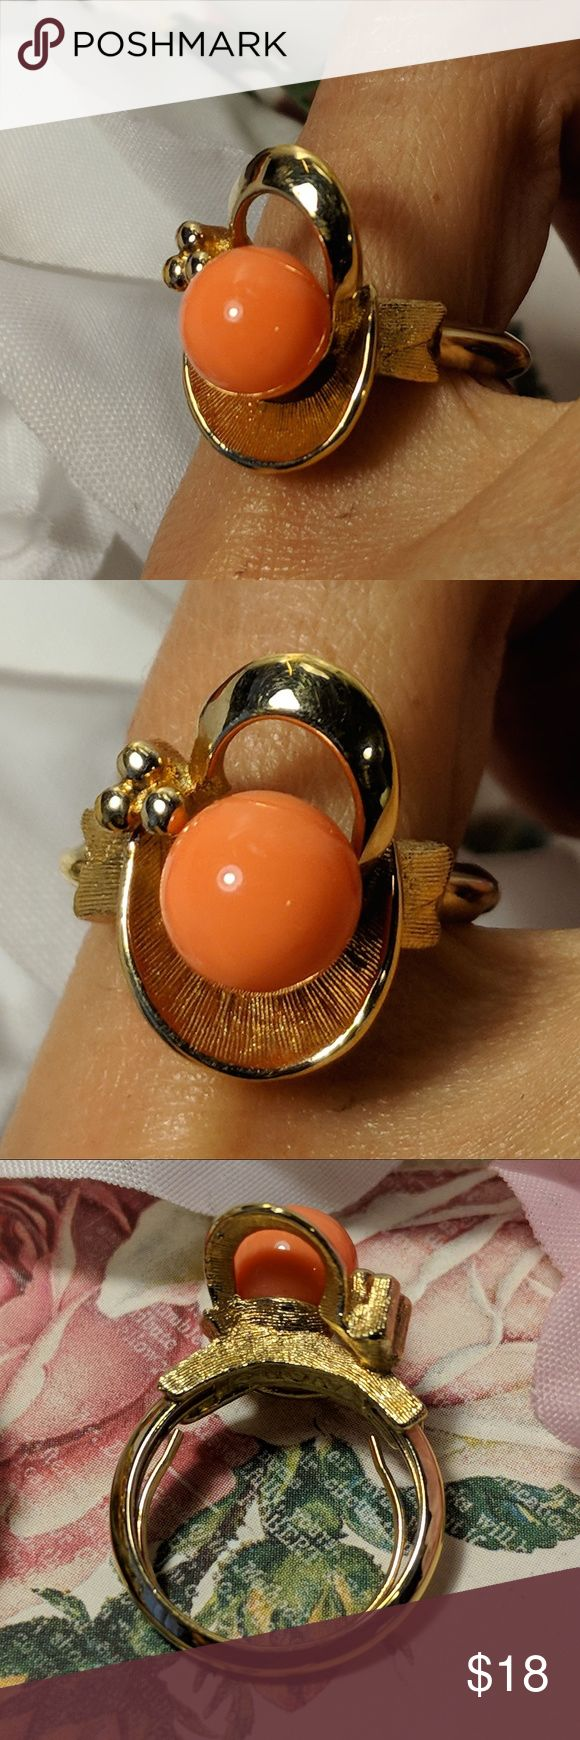 Vintage Avon Peach Orange Gold Cocktail Ring Sz 5 Vintage Avon Peach Orange Gold Cocktail Ring Sz 5  Vintage ring. Marked Avon. Has comfort sizer inside. Size 5 on my sizer. In perfect vintage condition. Looks new. Face is approx. 5/8 of an inch long. Stone is glass or lucite. Avon Jewelry Rings